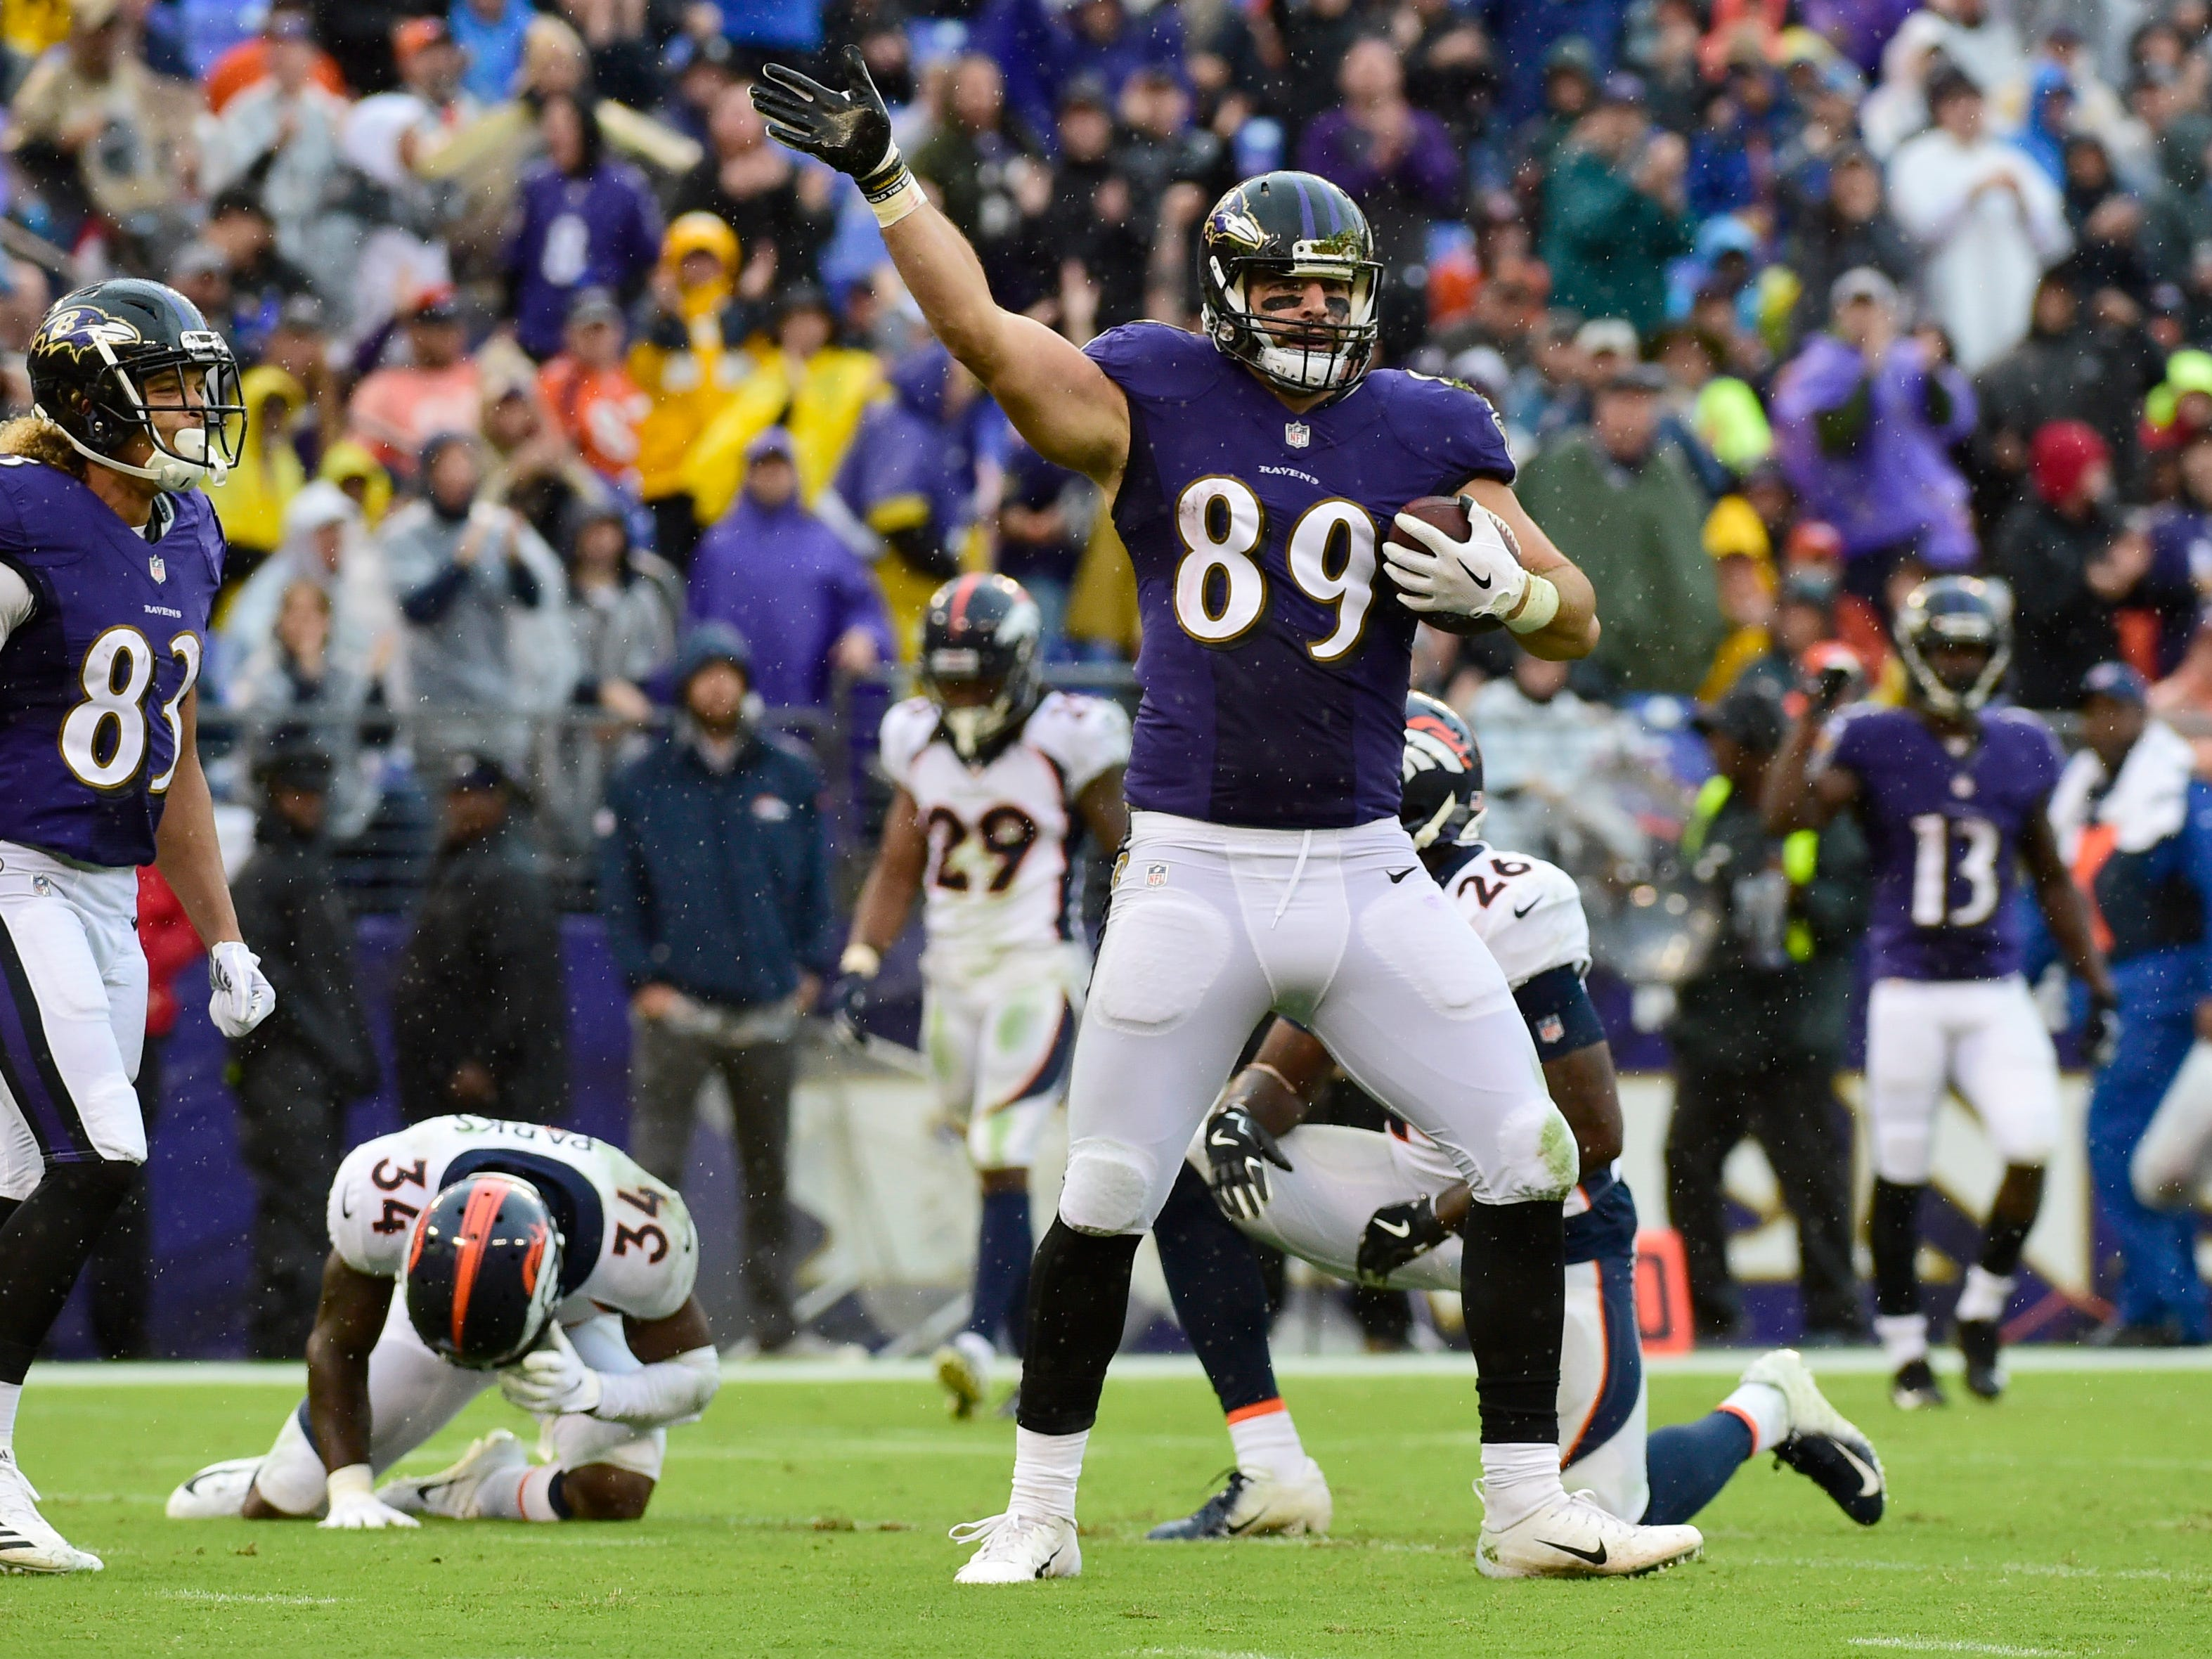 12. Ravens (17): Maybe craziest number of all, but they're on pace to go 64-for-64 in terms of scoring TDs when entering red zone this season.